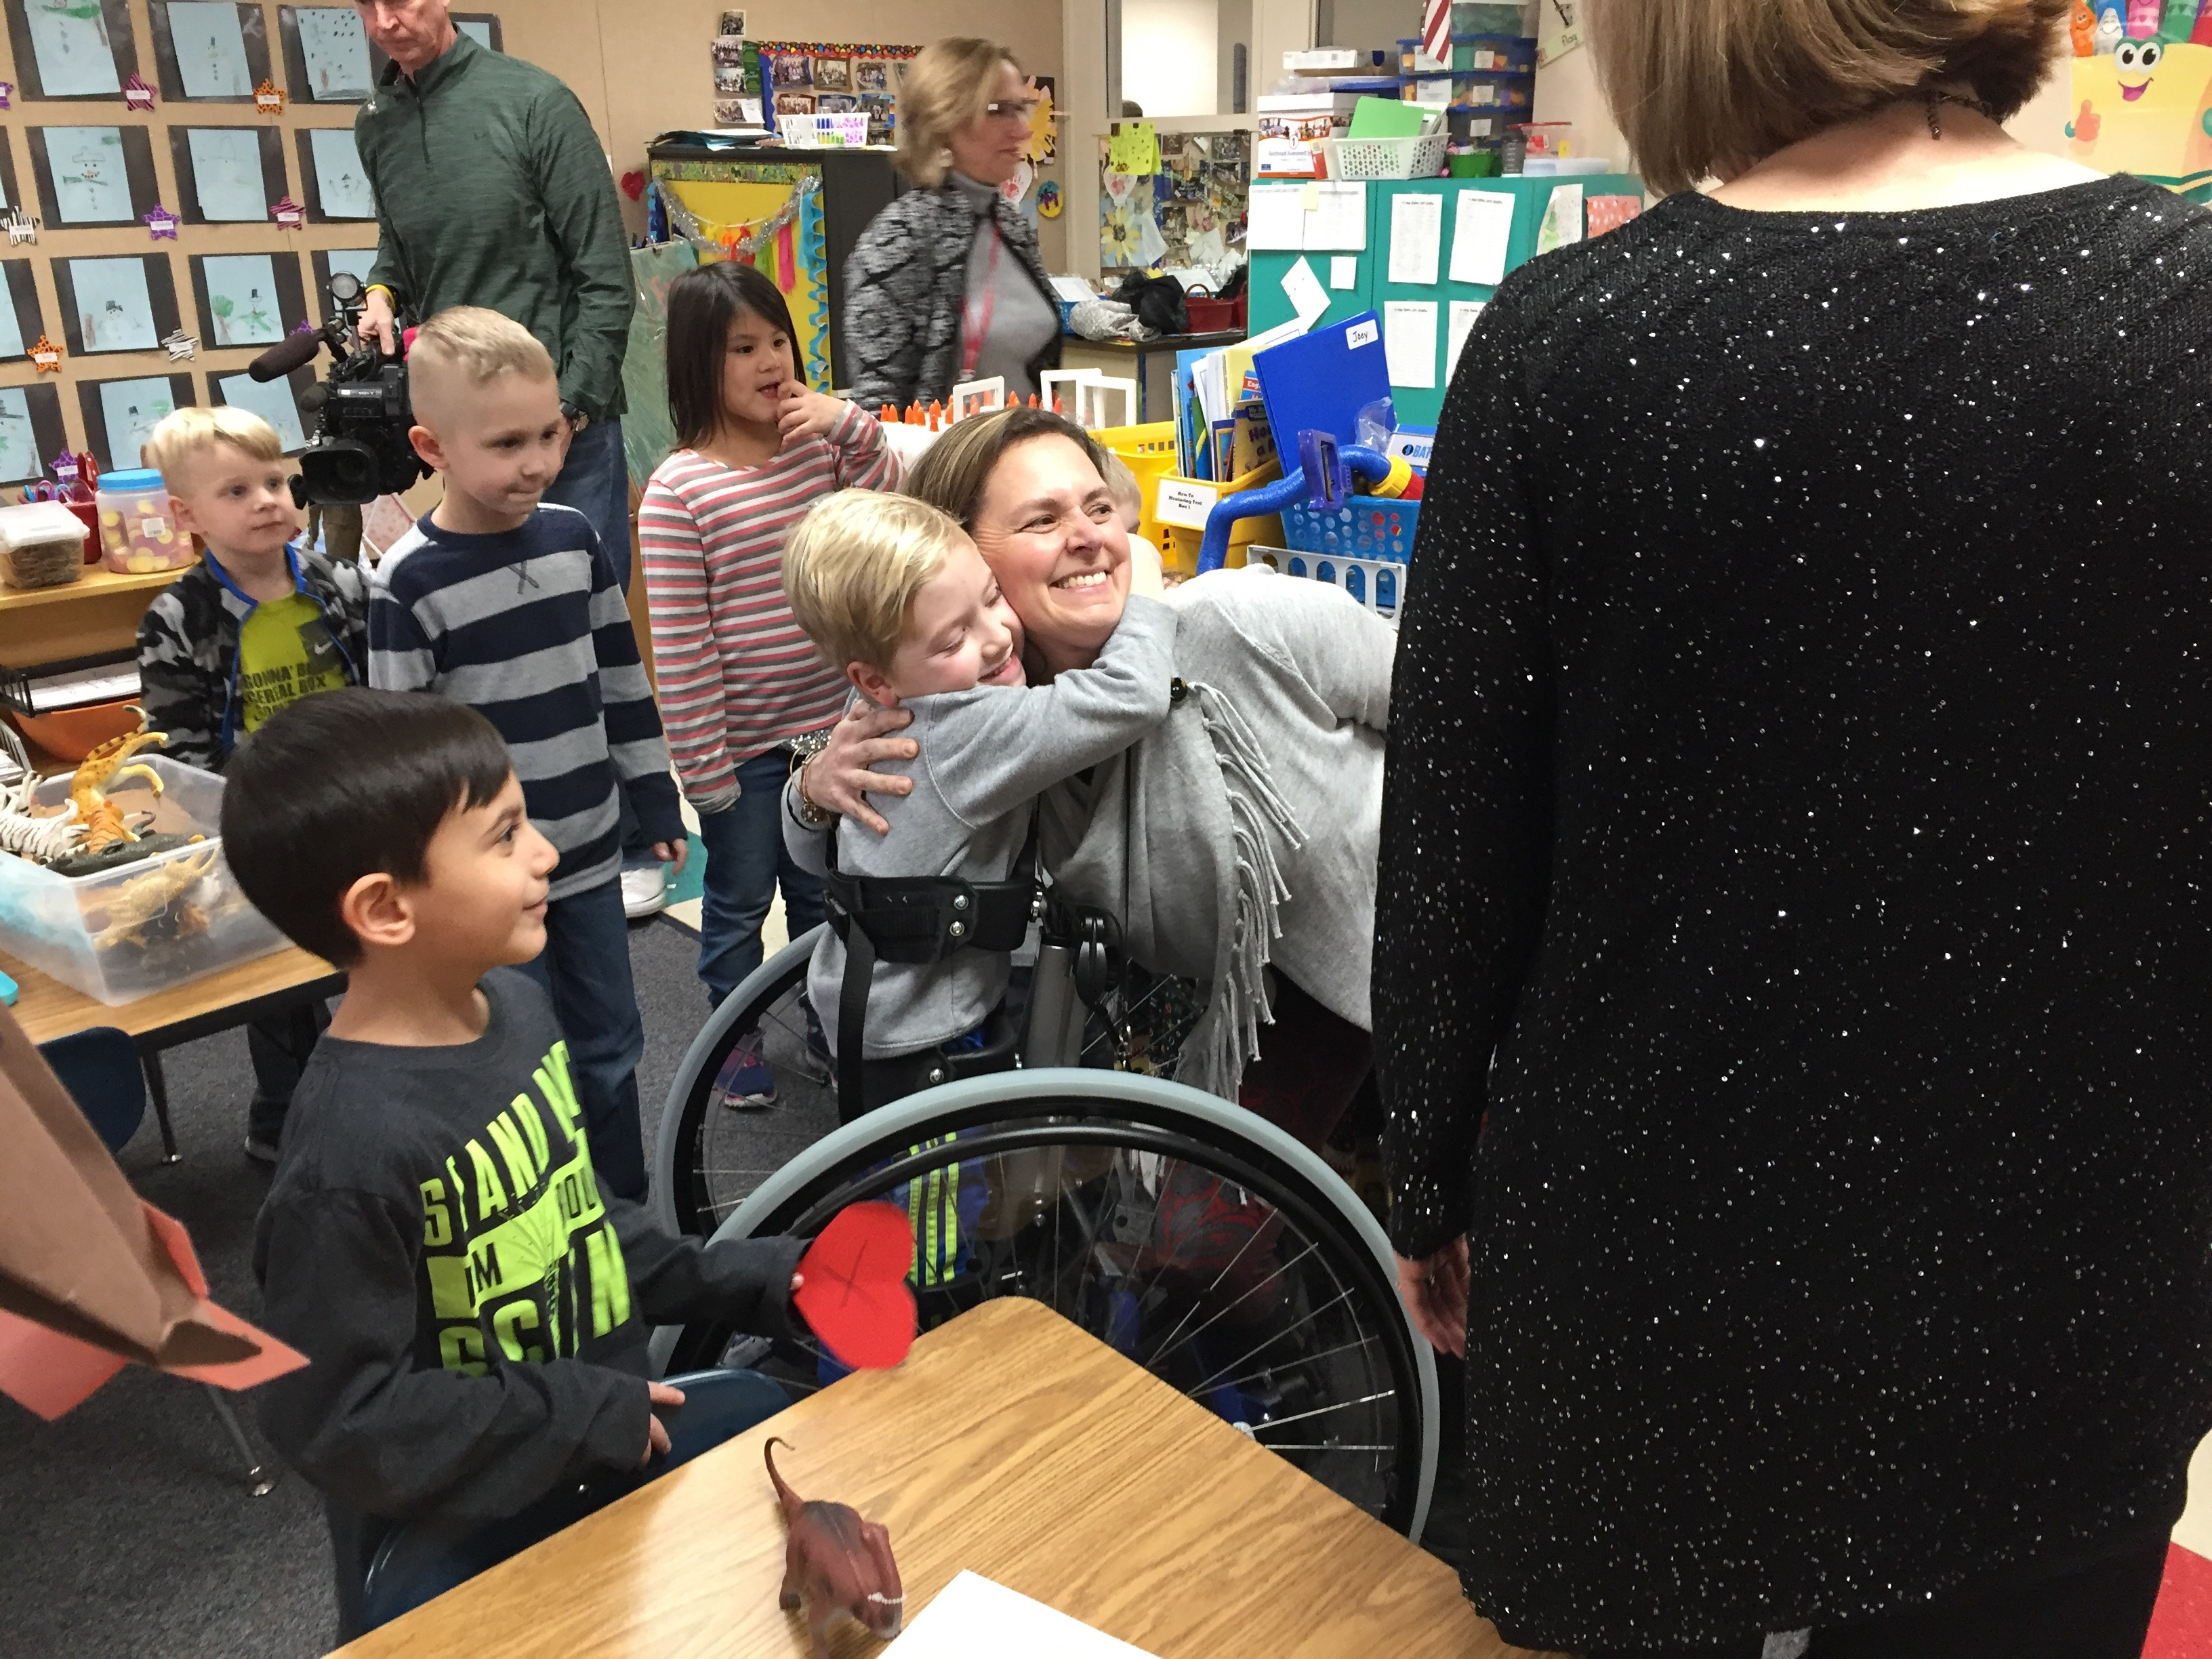 Kindergarten teacher April Moran receives a hug from a student after being announced as a Golden Apple Award recipient Feb. 7, 2018, at the Cormier Early Learning Center in Ashwaubenon. (WLUK/Donna Fischer)